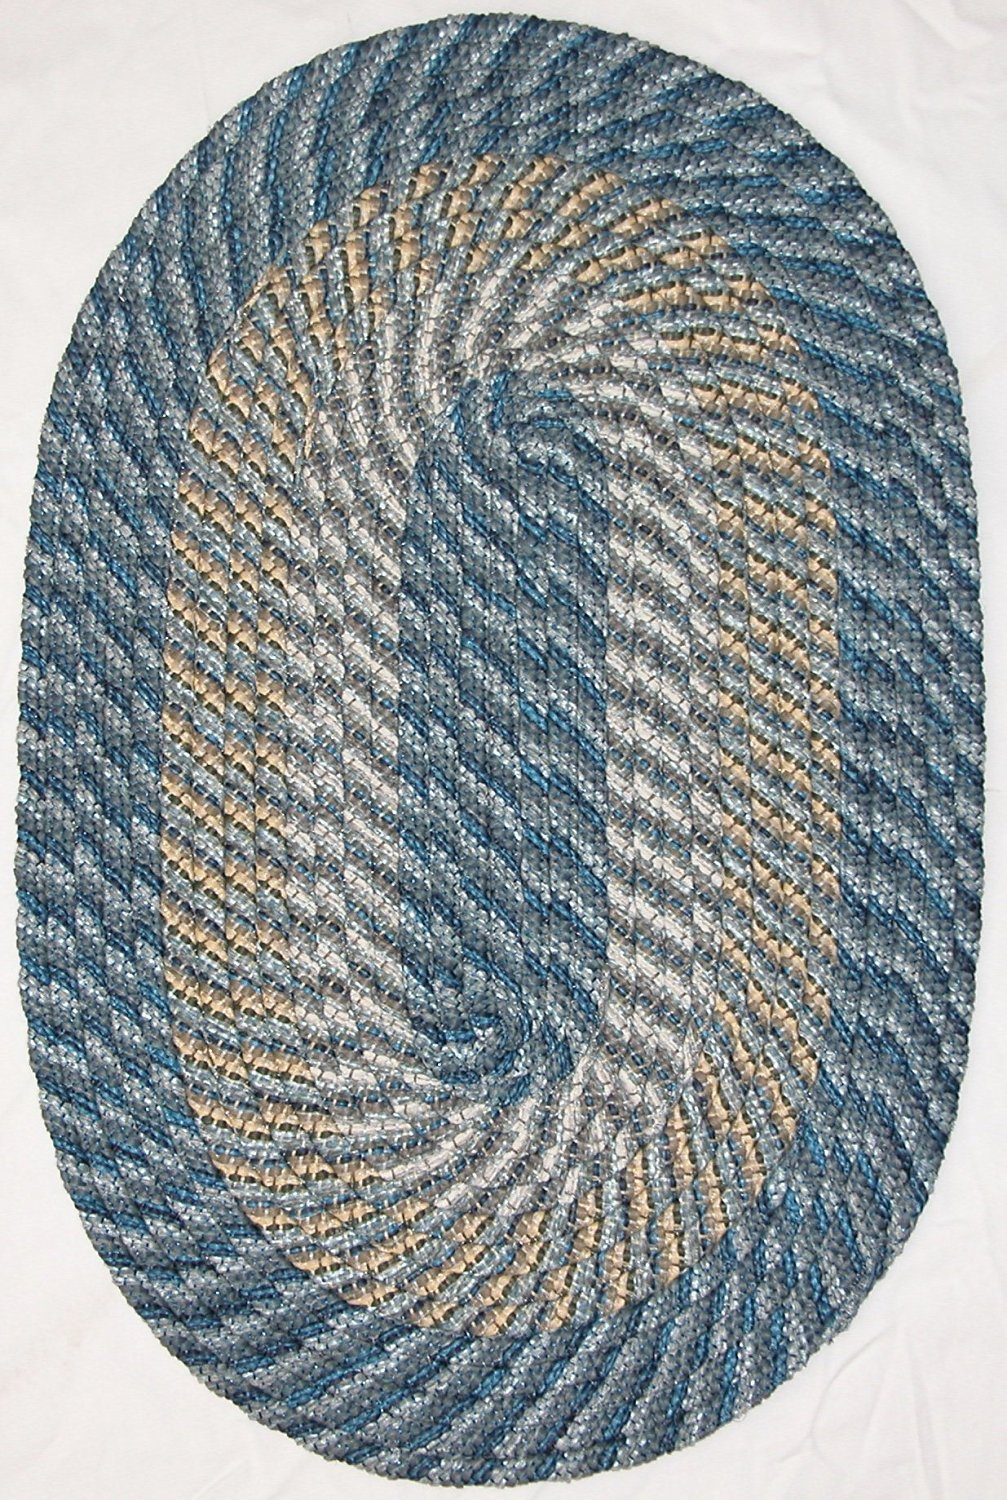 "Plymouth Braided Rug in Colonial Royal Blue (22"" x 108"" (1'10"" x 9') Runner)"